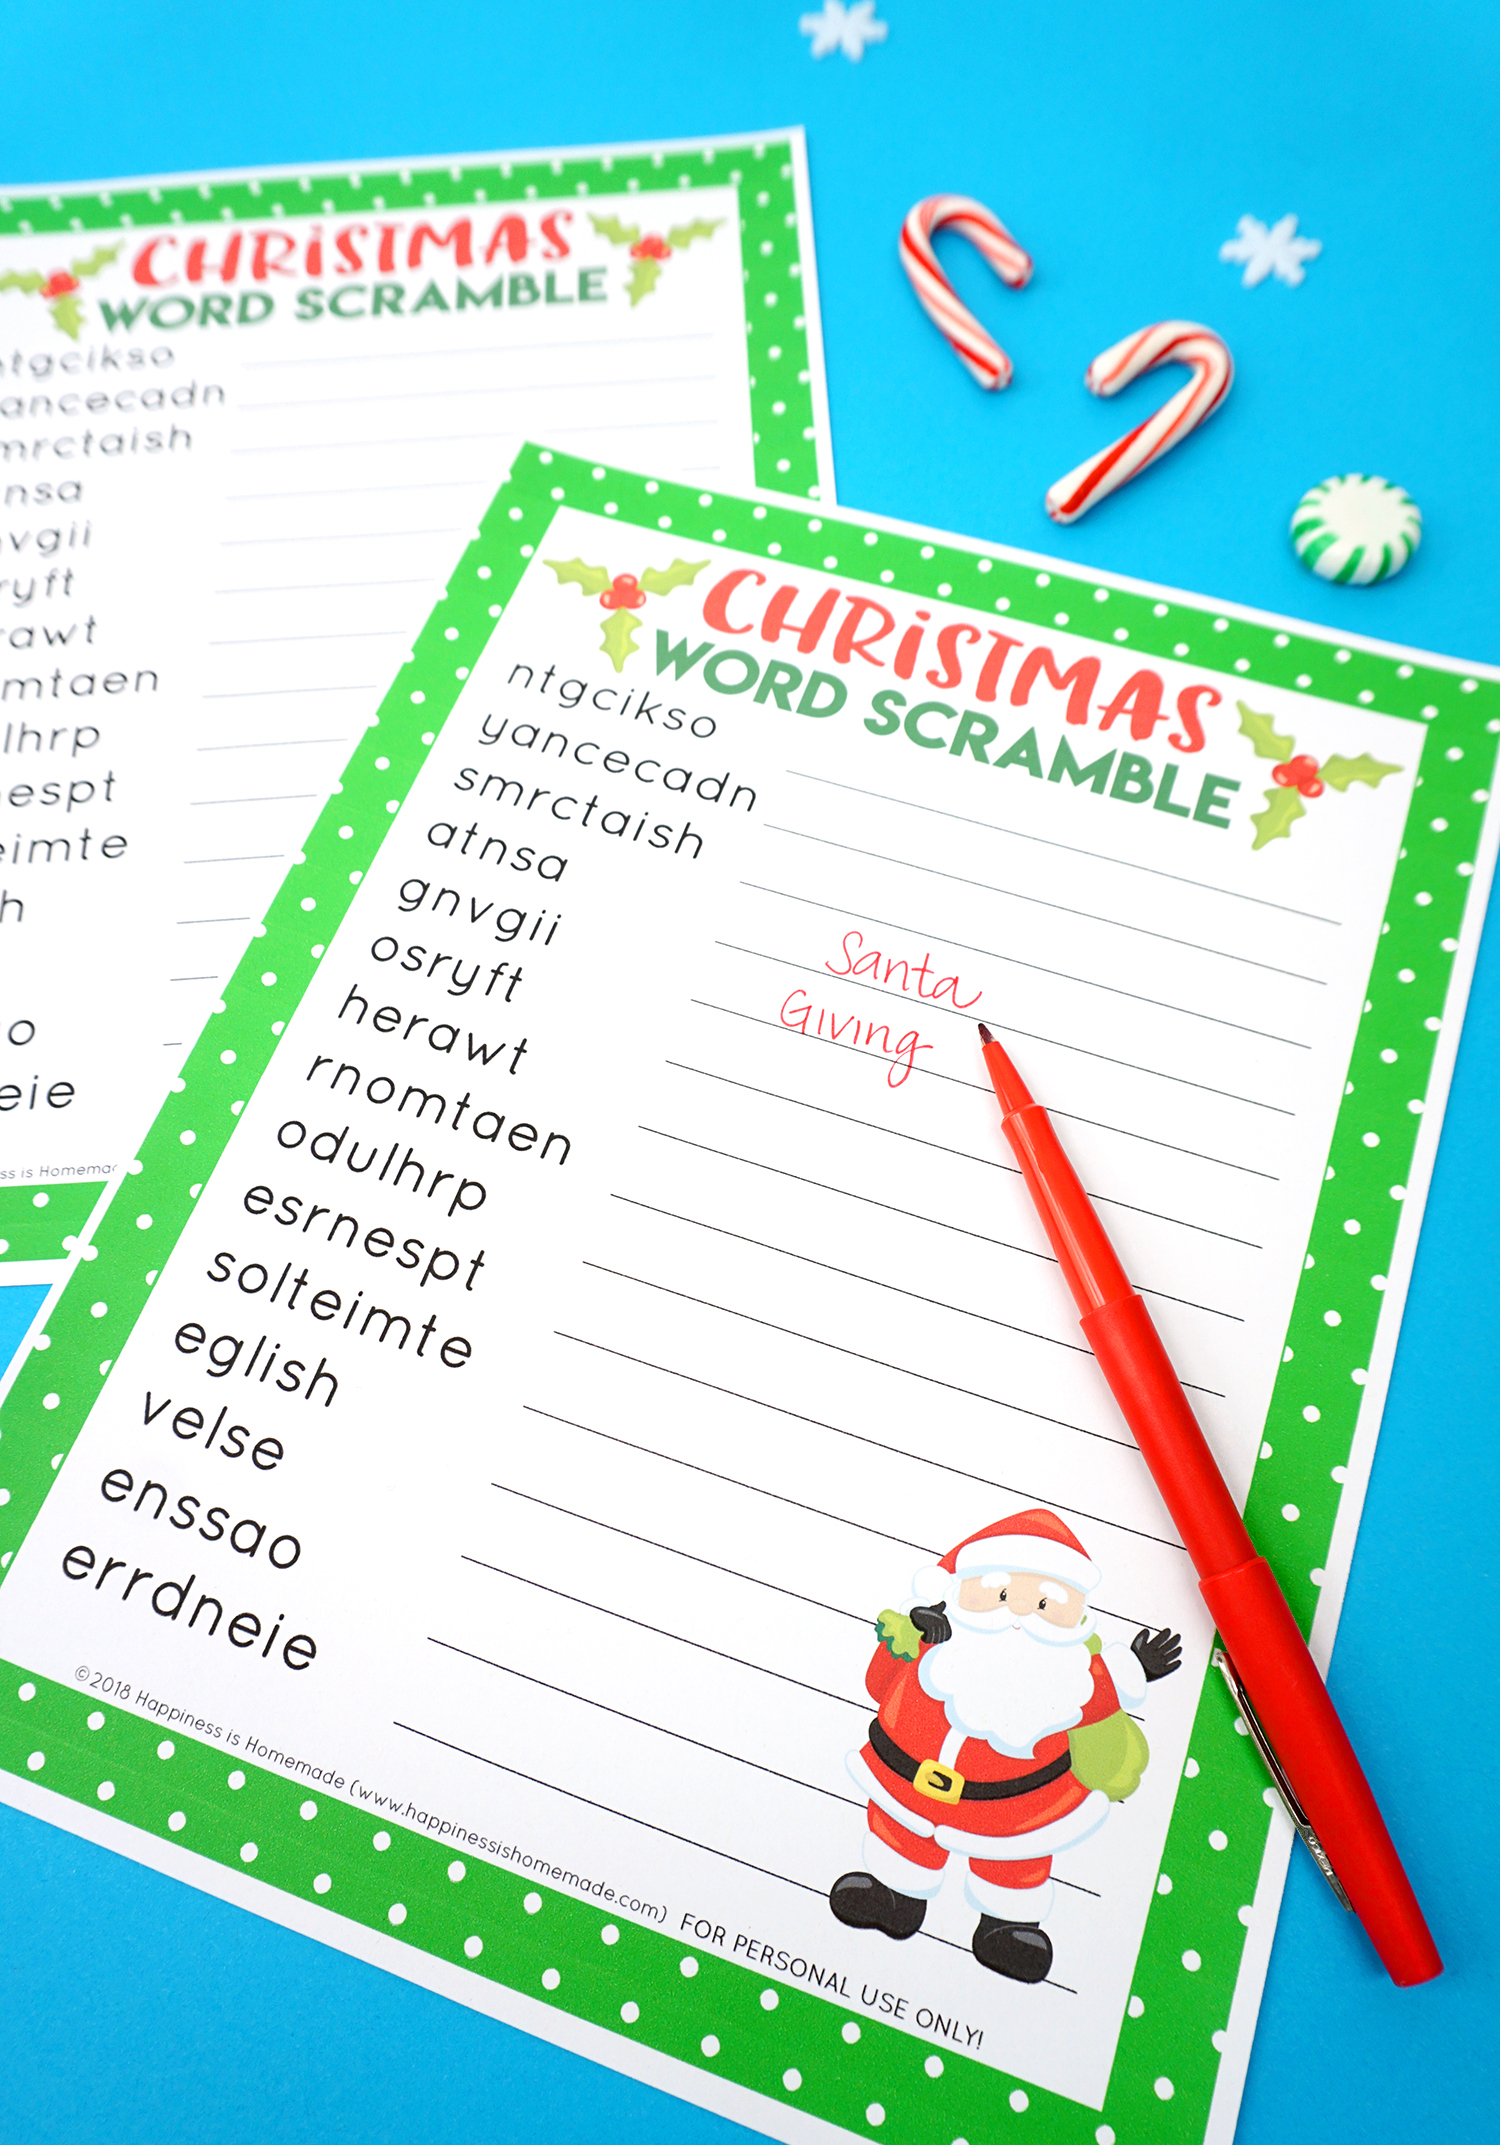 Christmas Word Scramble Worksheets With Answers   Printable